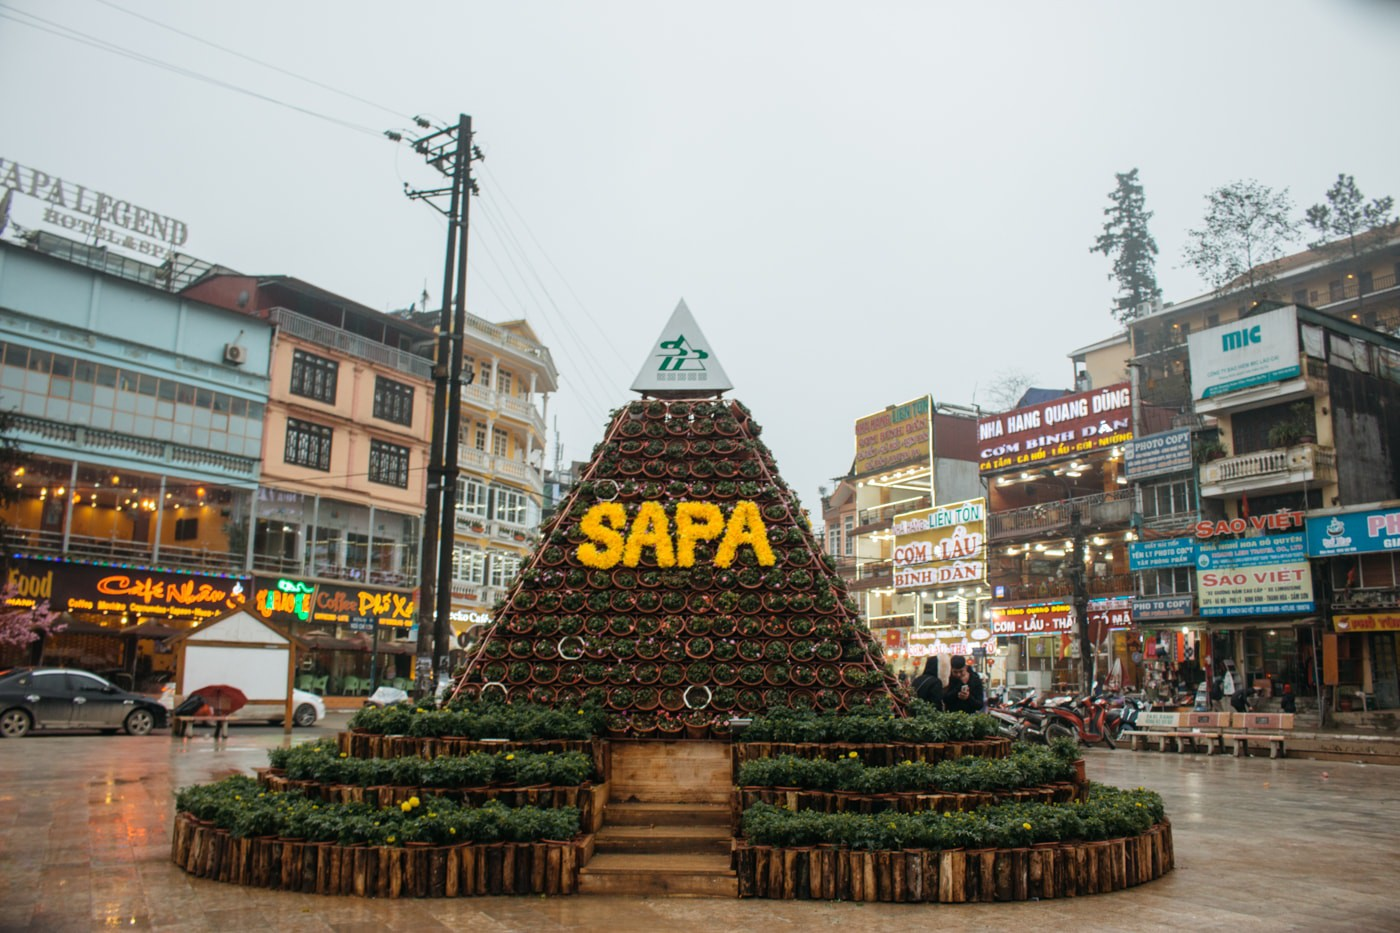 sctp0075 pham vietnam laocai sapa cityguide 2030 - Top 10+ Unique & Amazing Things To Do in Sapa, Vietnam - Updated 2021